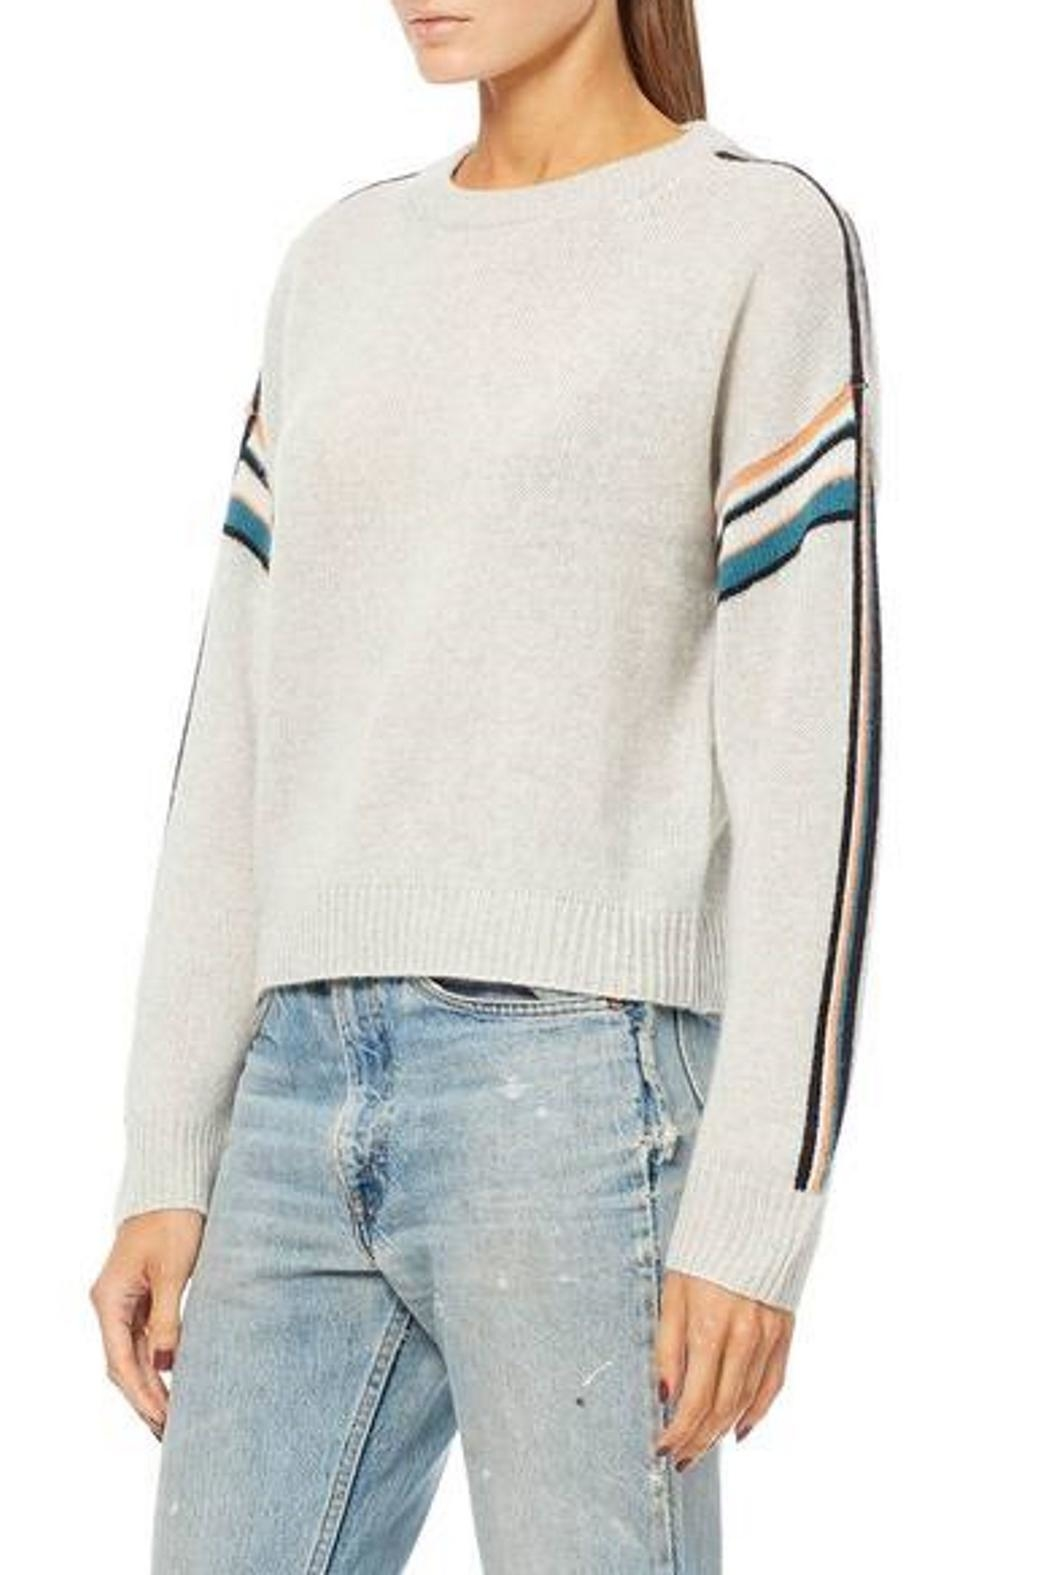 378120d2f0 360 Cashmere Teagan Sweater from New York City by Olive and Bette s ...